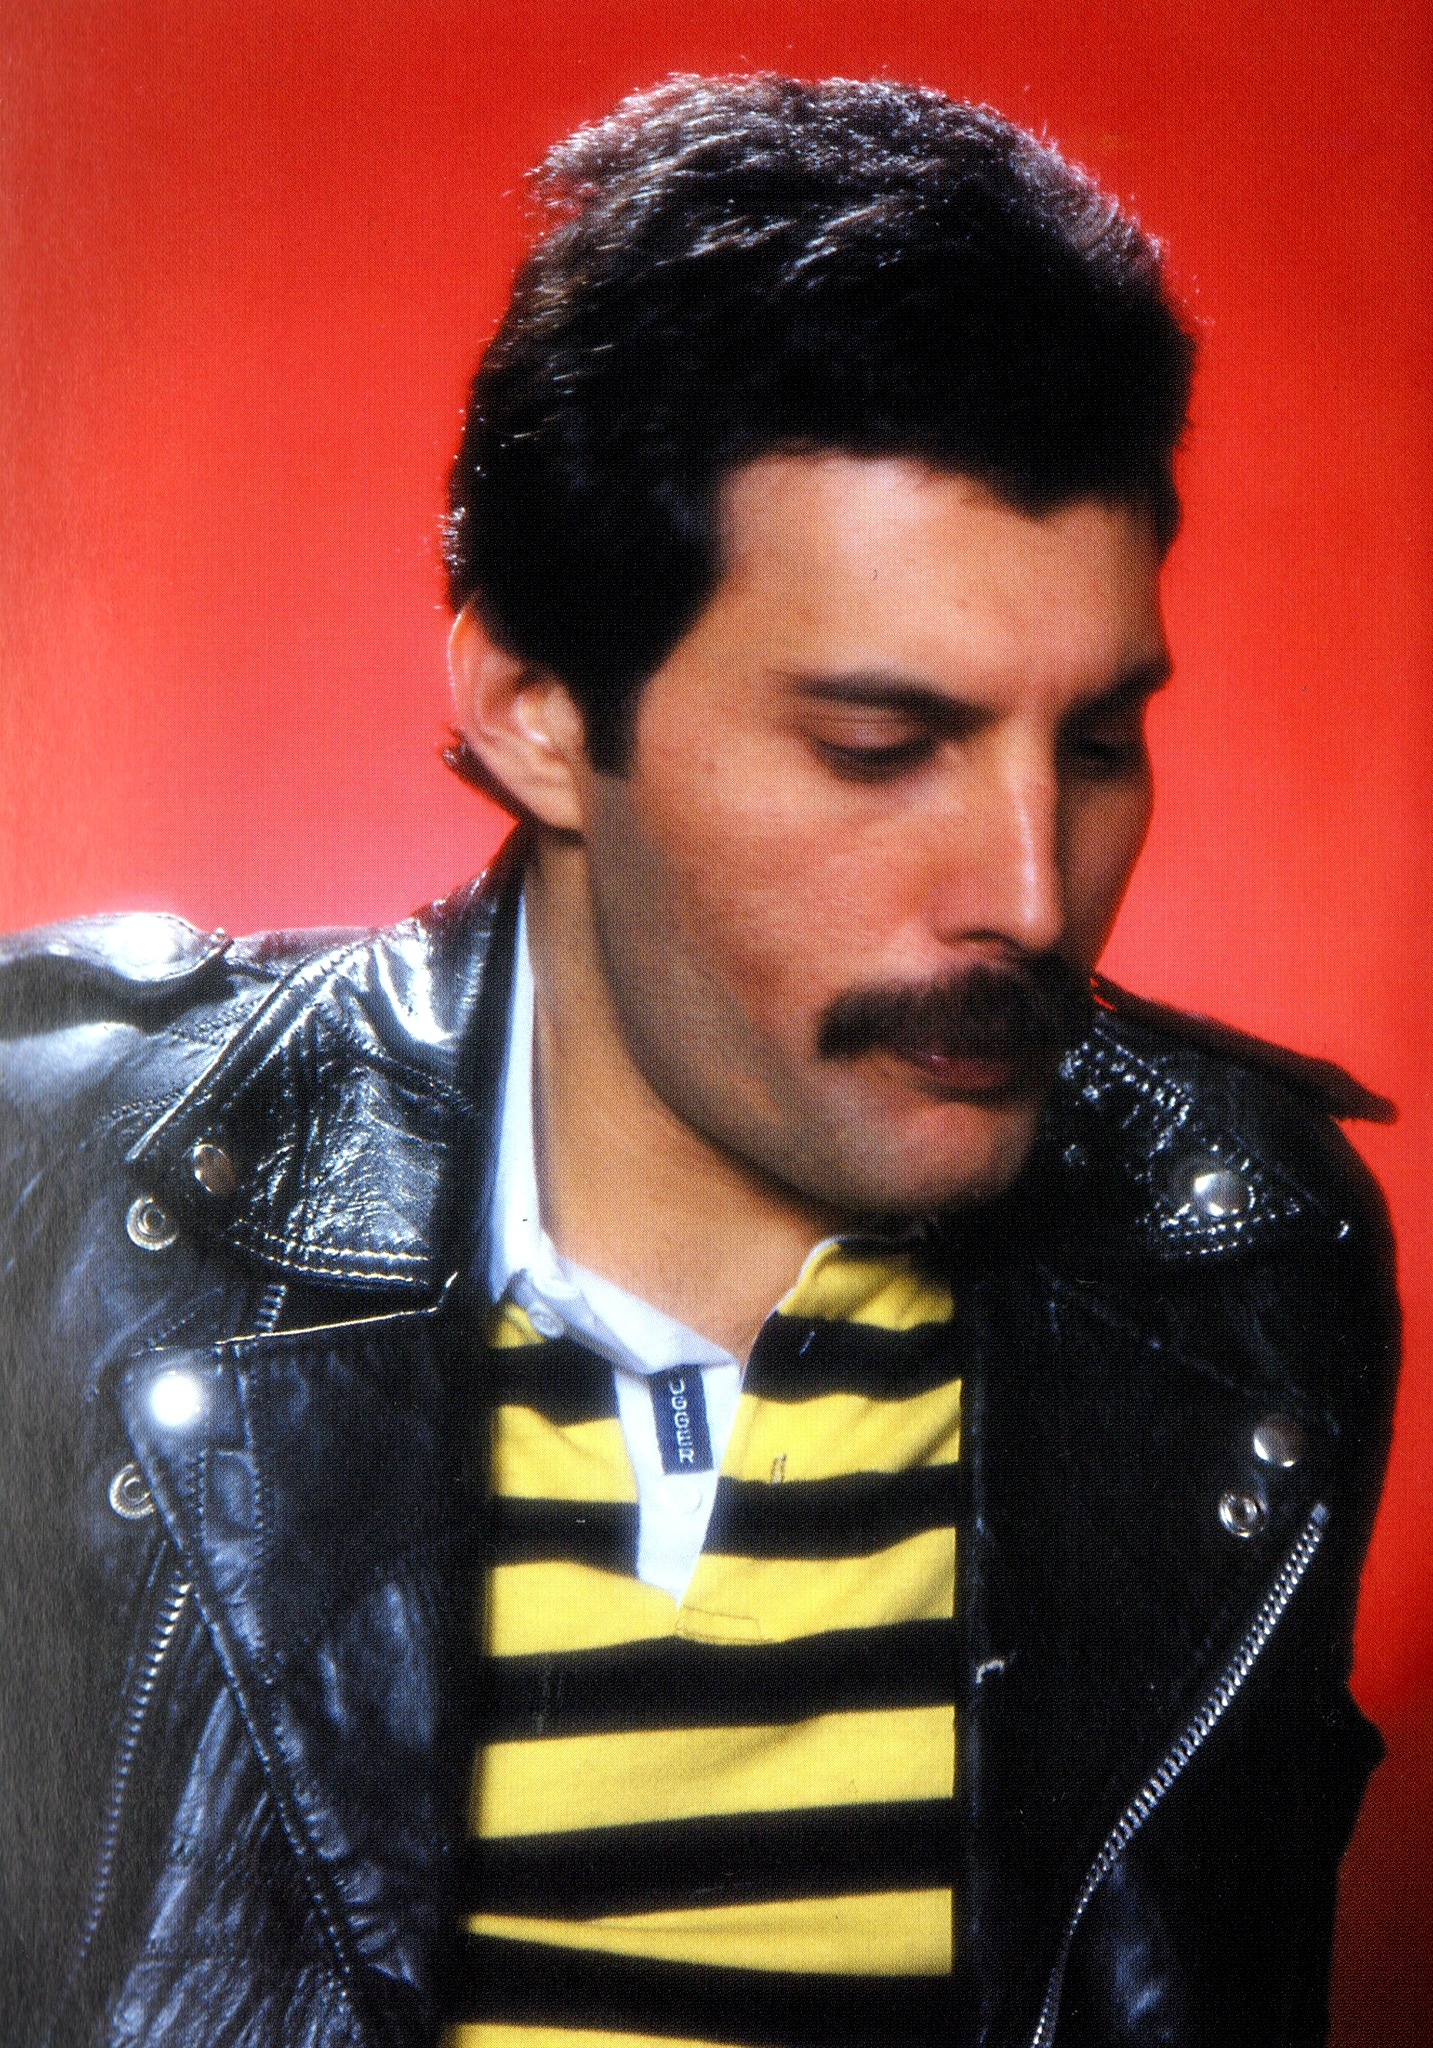 Time Passages Queen Or Freddie Mercury Fanfic 33 A